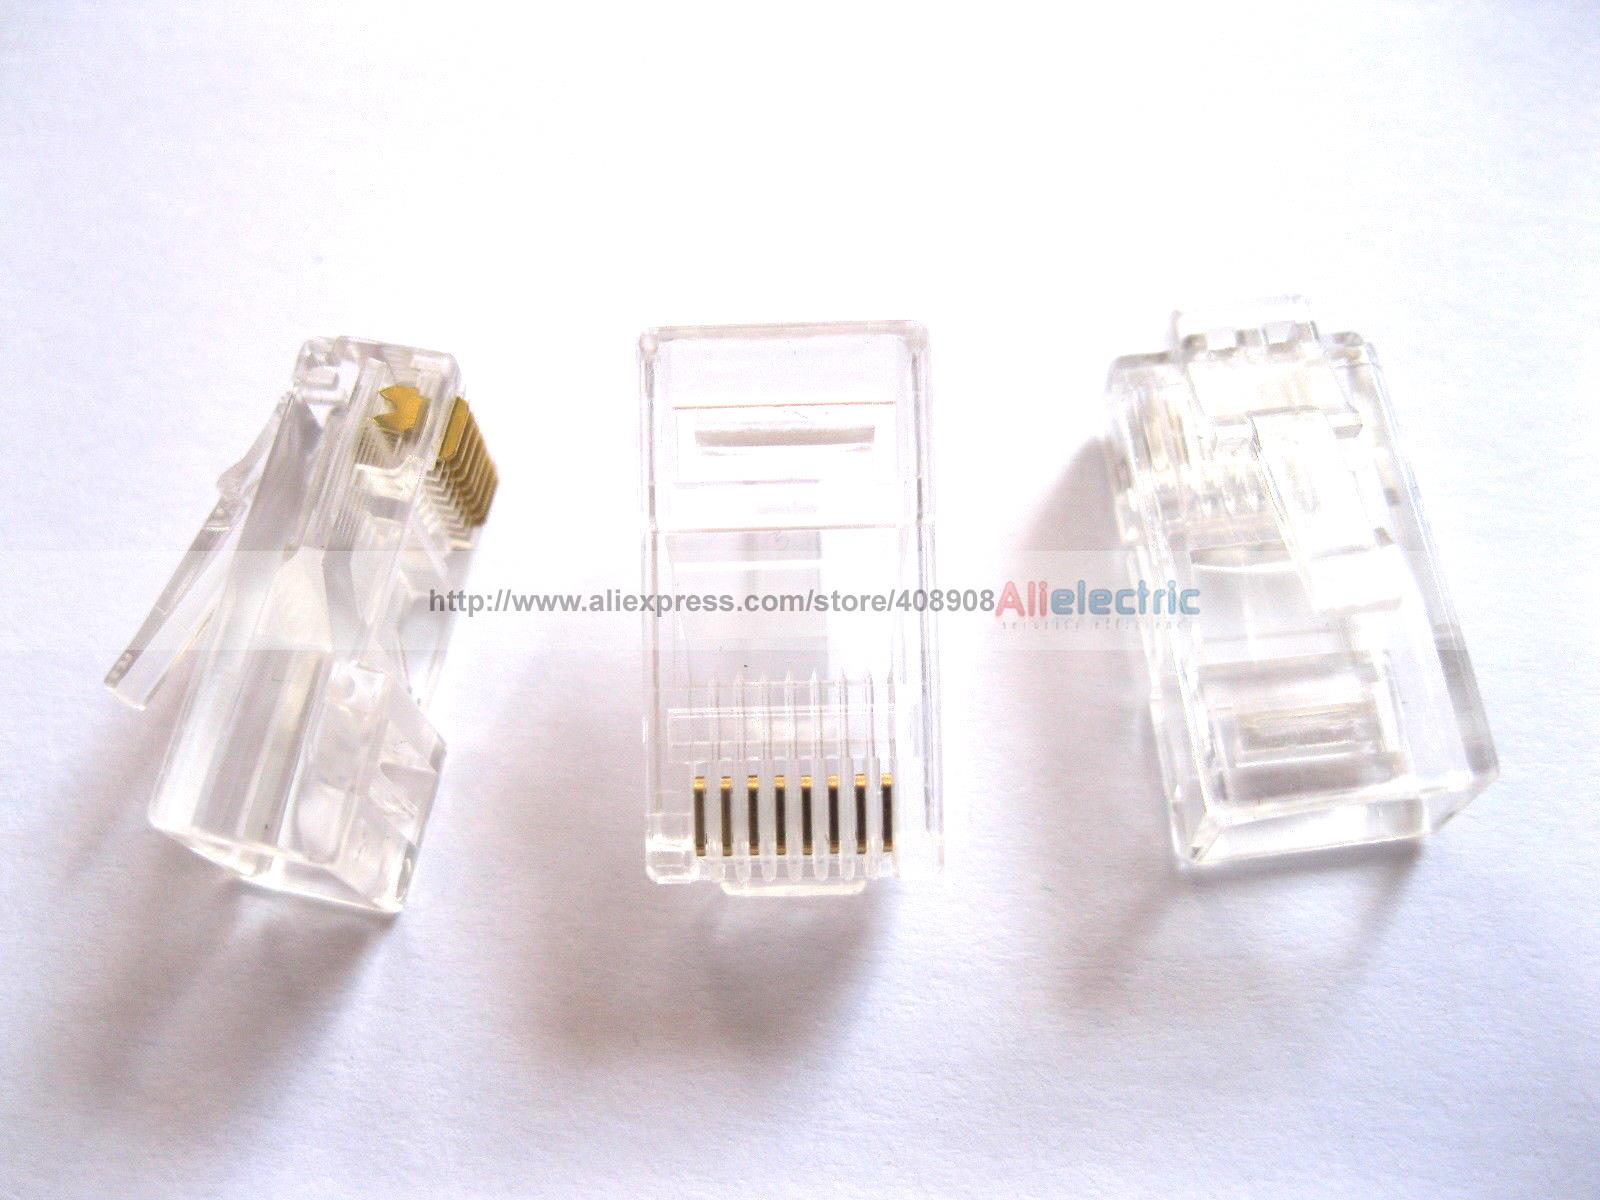 300 Pcs RJ45 Modular Plug Network Connector CAT5 8P8C imc hot 10 pcs rj45 8p8c double ports female plug telephone connector